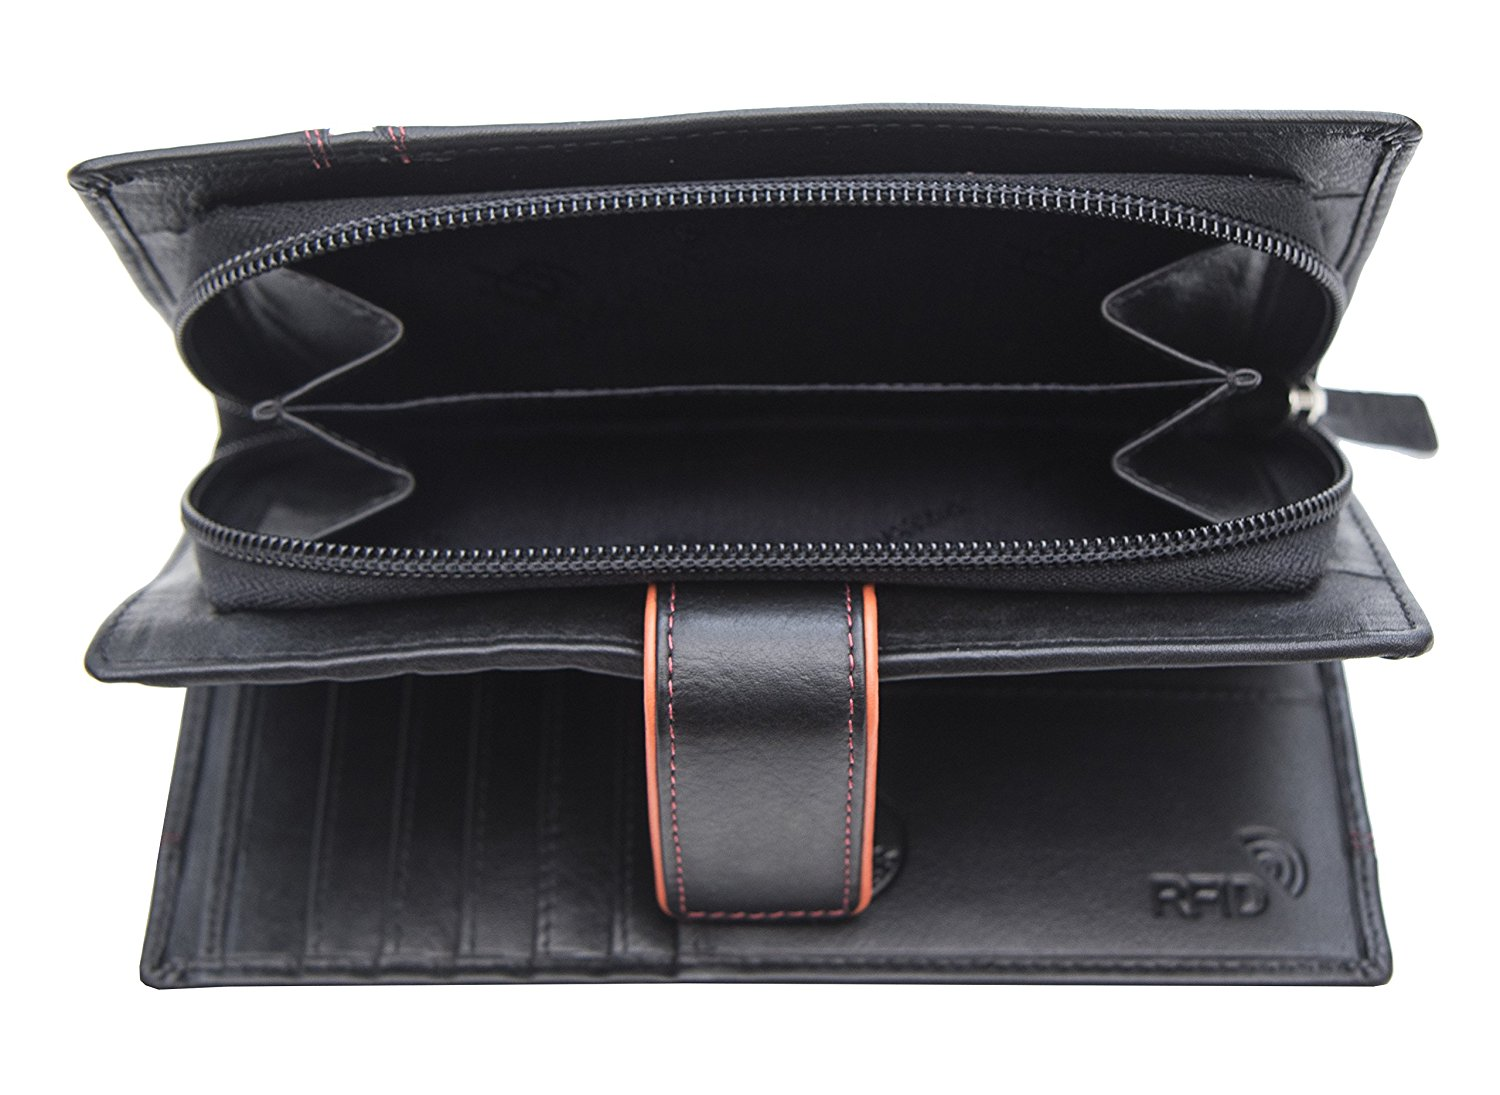 Femmes-Extra-Large-en-Cuir-Veritable-RFID-Bloquant-Organisateur-Clutch-Wallet-purse miniature 6